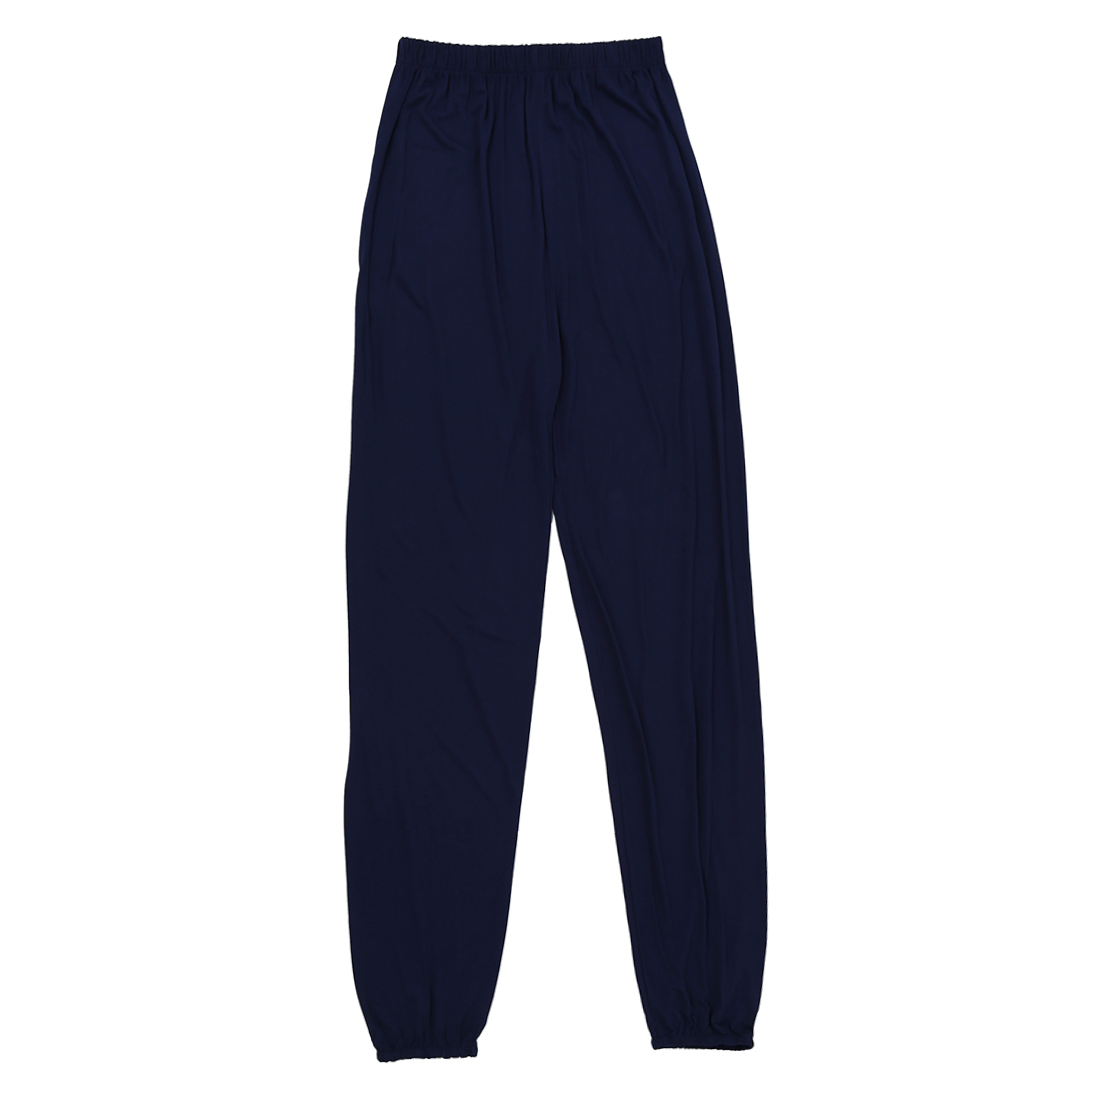 yoga pants Loose Modal bloomers pants home tai chi harem joggers sweat Pants both men and women-Dark Blue